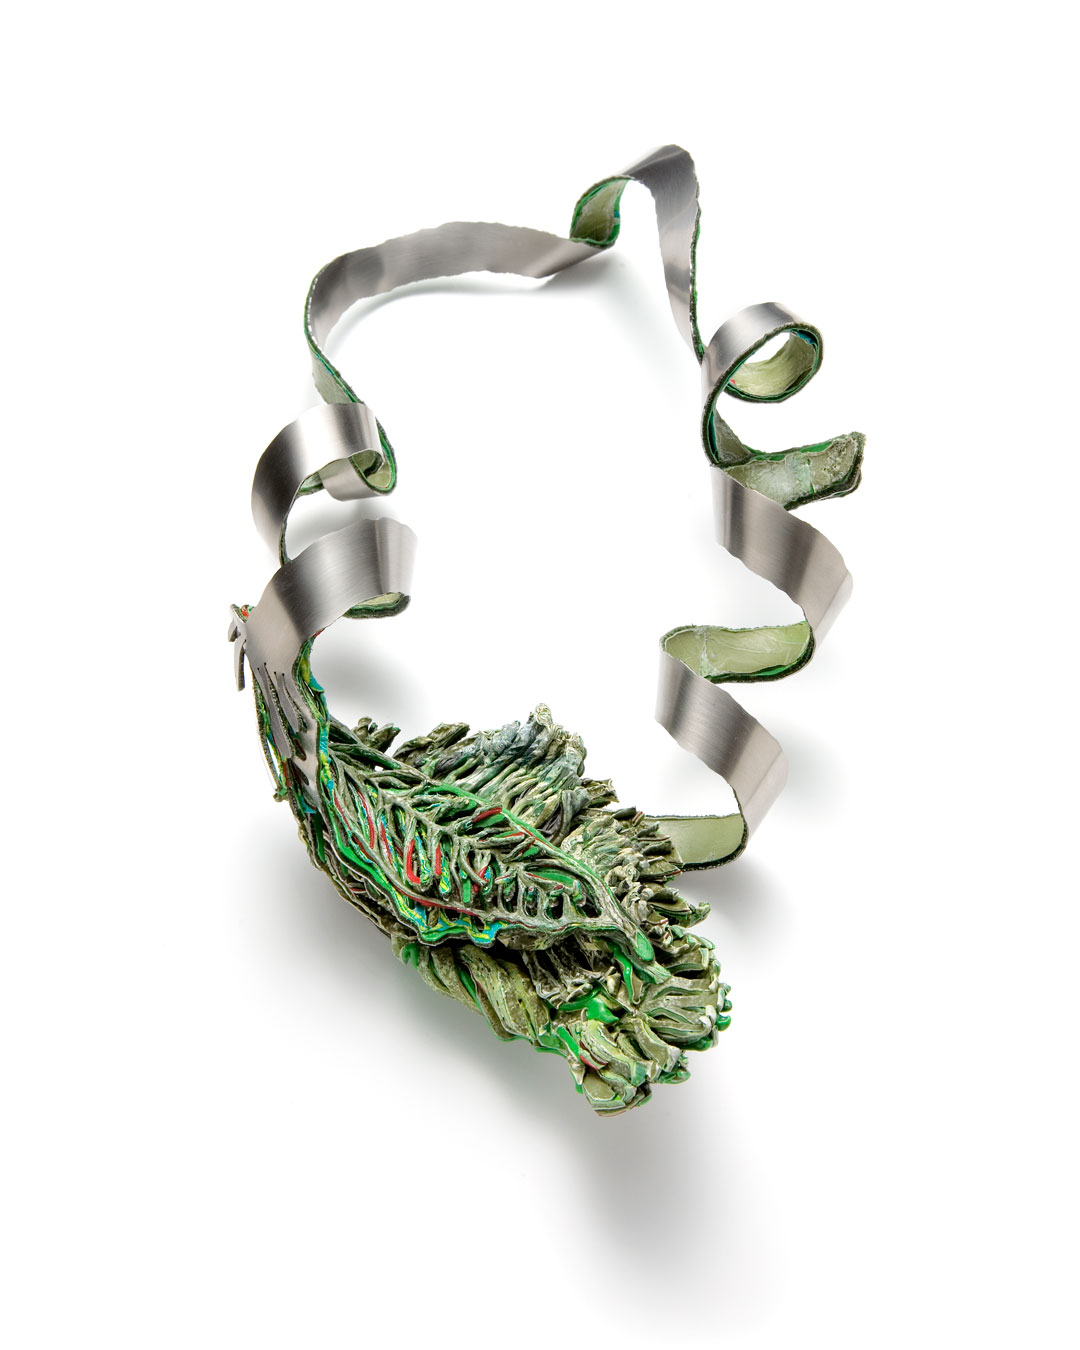 Ineke Heerkens, Dwarrelend Blad (Dwarf Leaf),  2011, necklace; polyethylene, stainless steel, oxidised silver, 320 x 165 x 75 mm, €2700